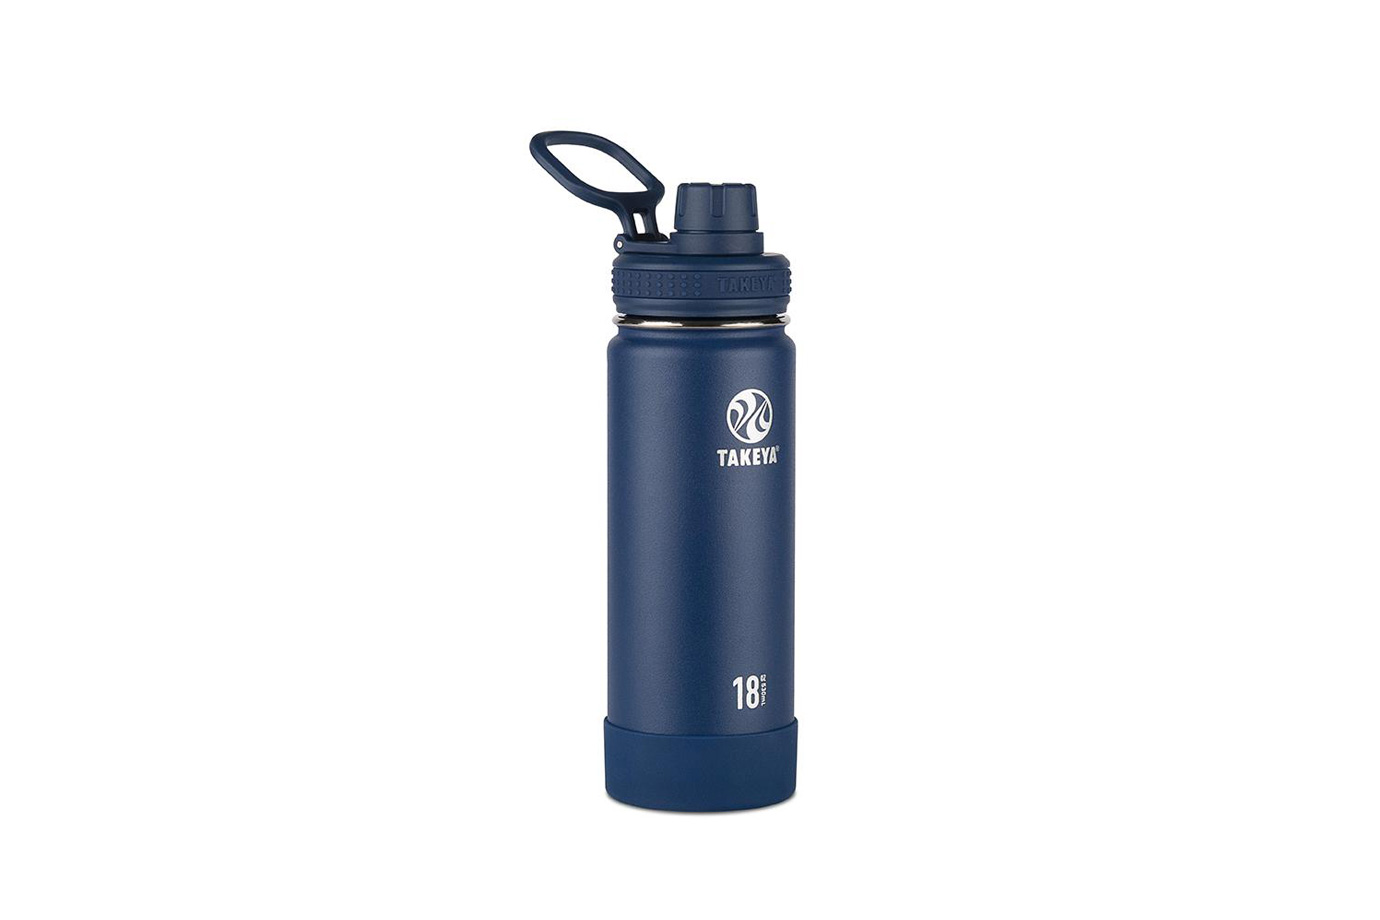 Takeya 18 oz Actives Insulated Water Bottle